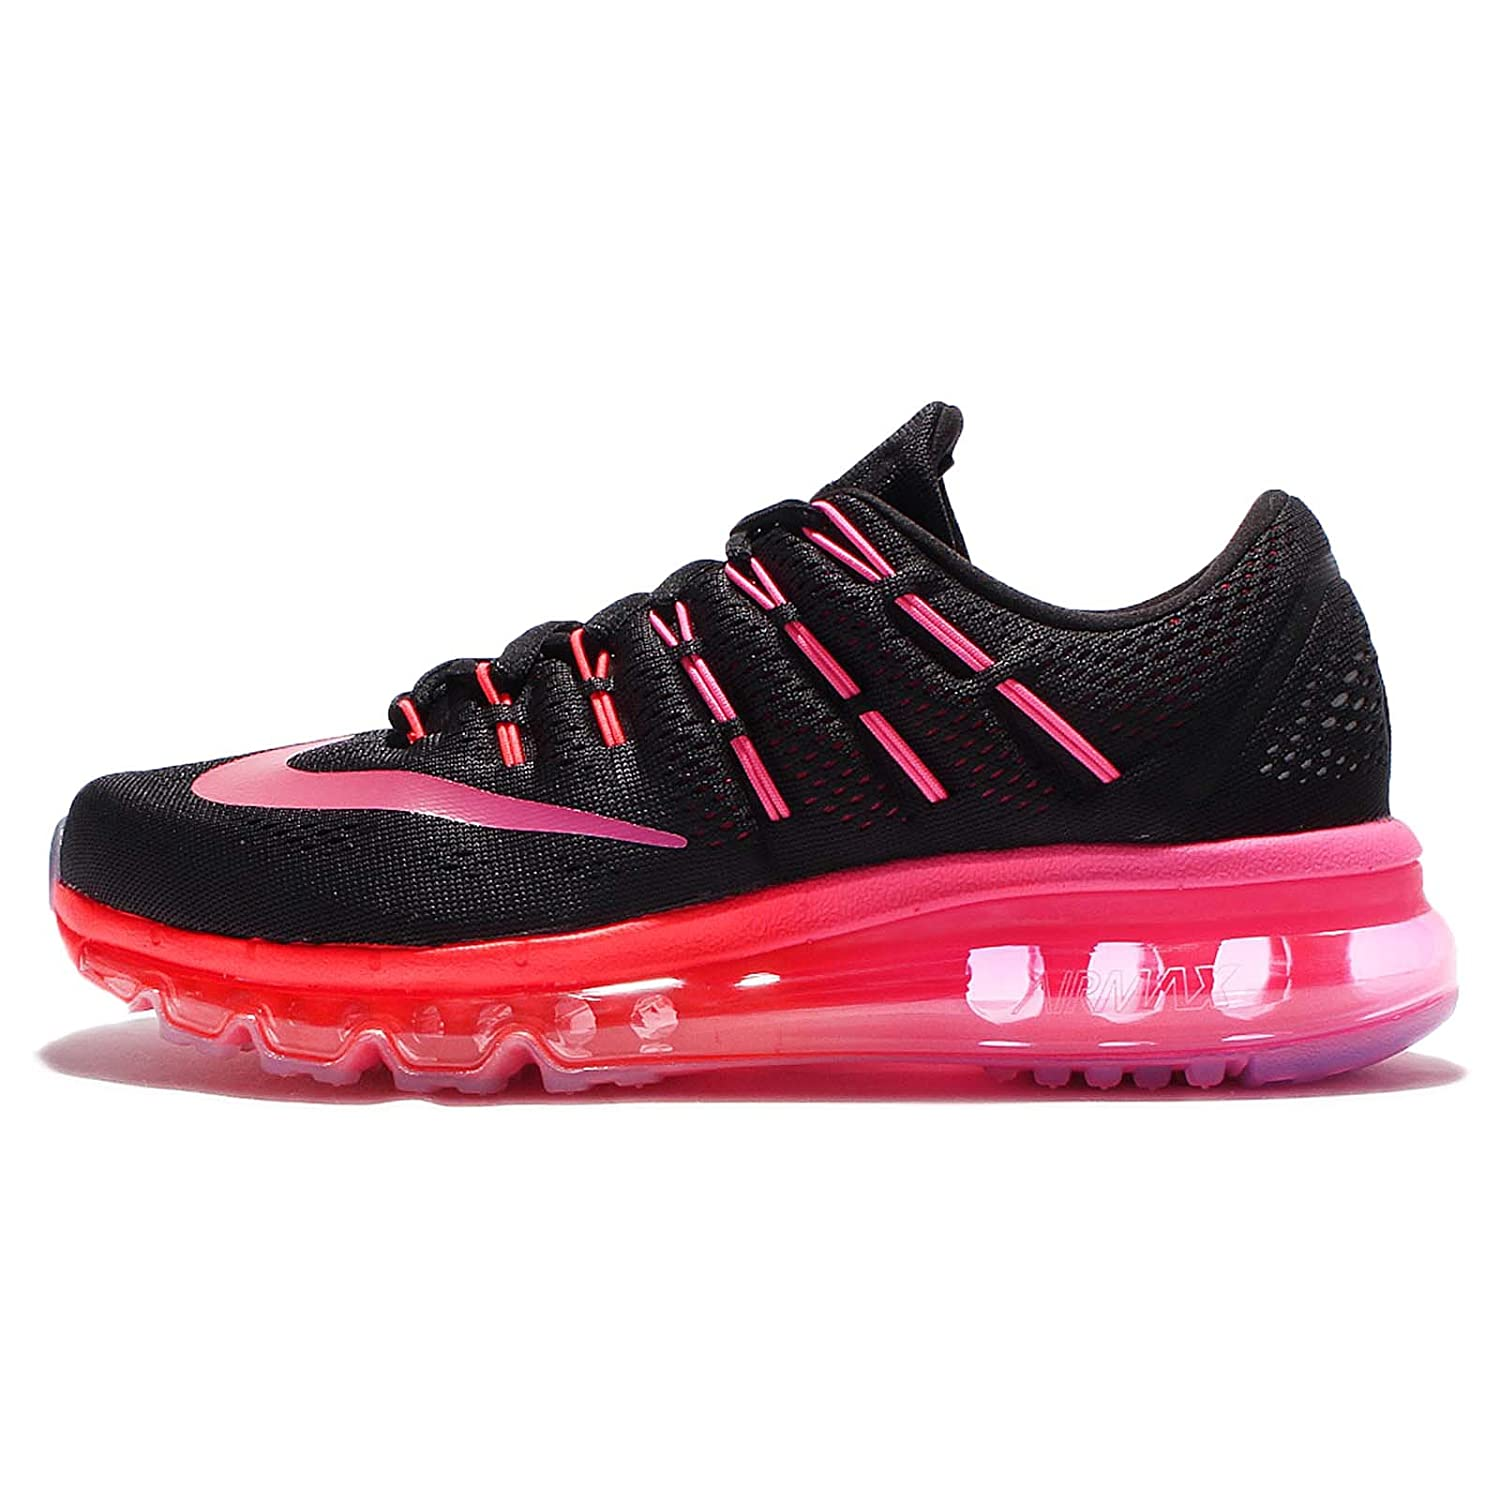 Nike Womens Air Max 2016 Running Shoes Black Multi Colo Noble Red 806772-006 Size 7